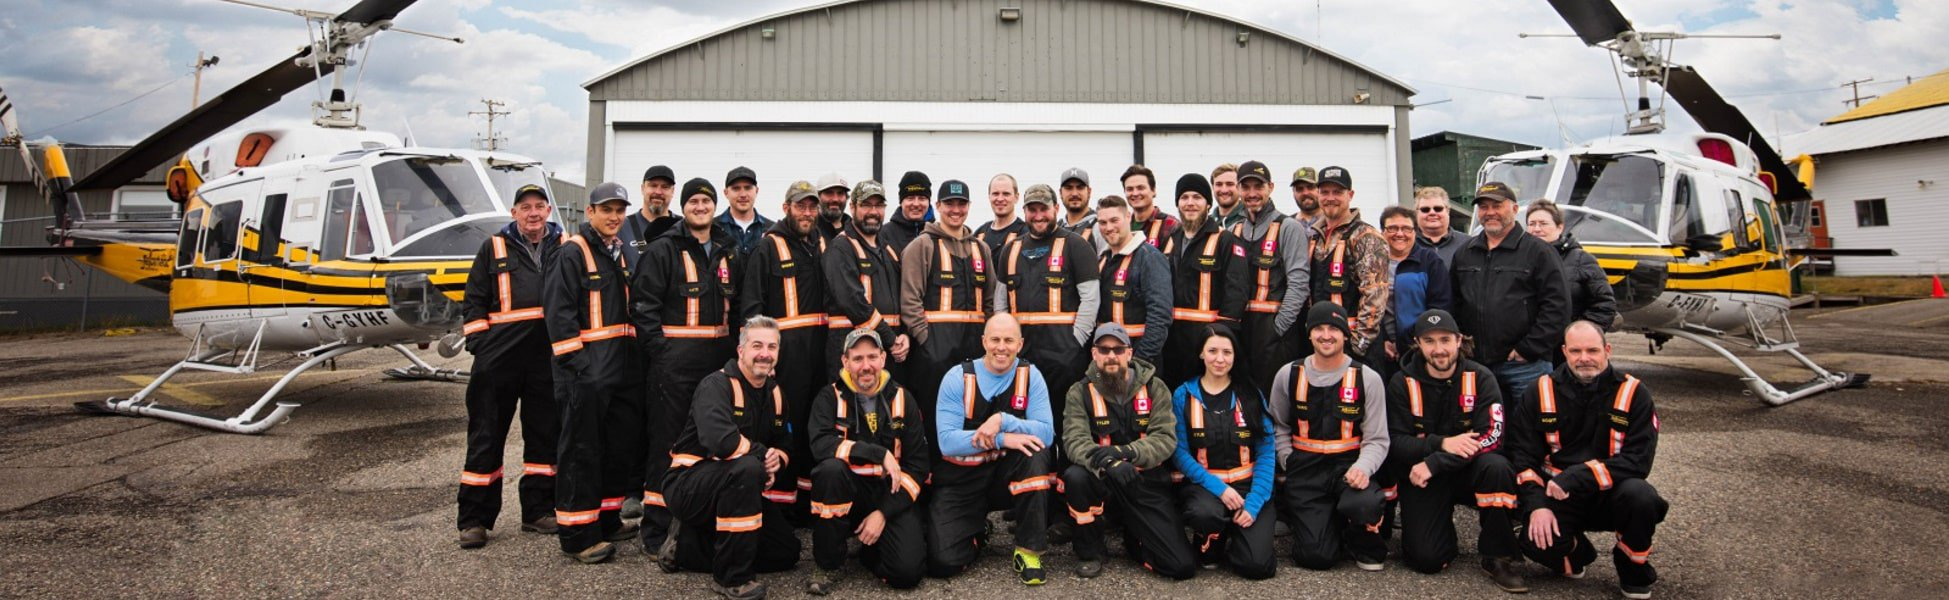 Yellowhead Helicopters engineering staff